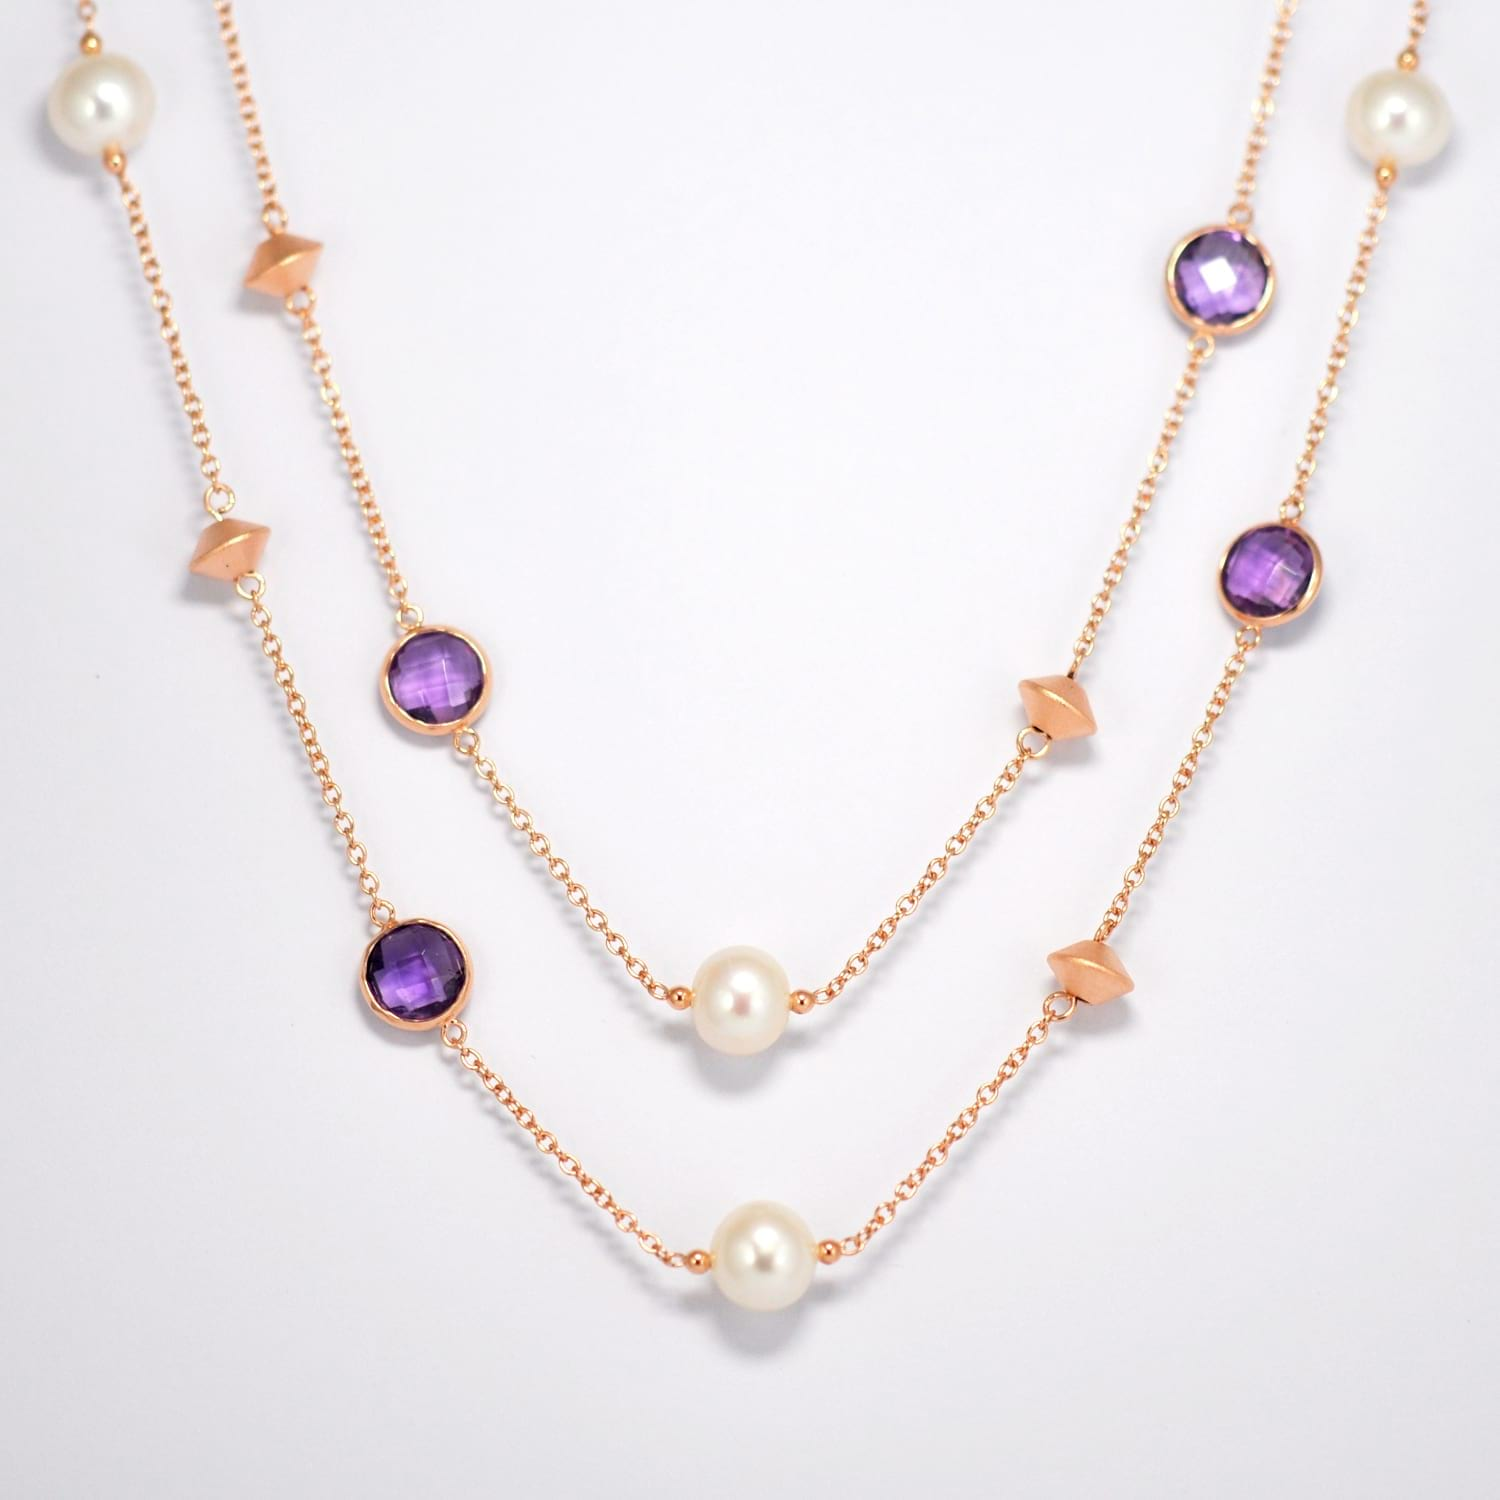 Amethyst & Fresh Water Pearl Necklace